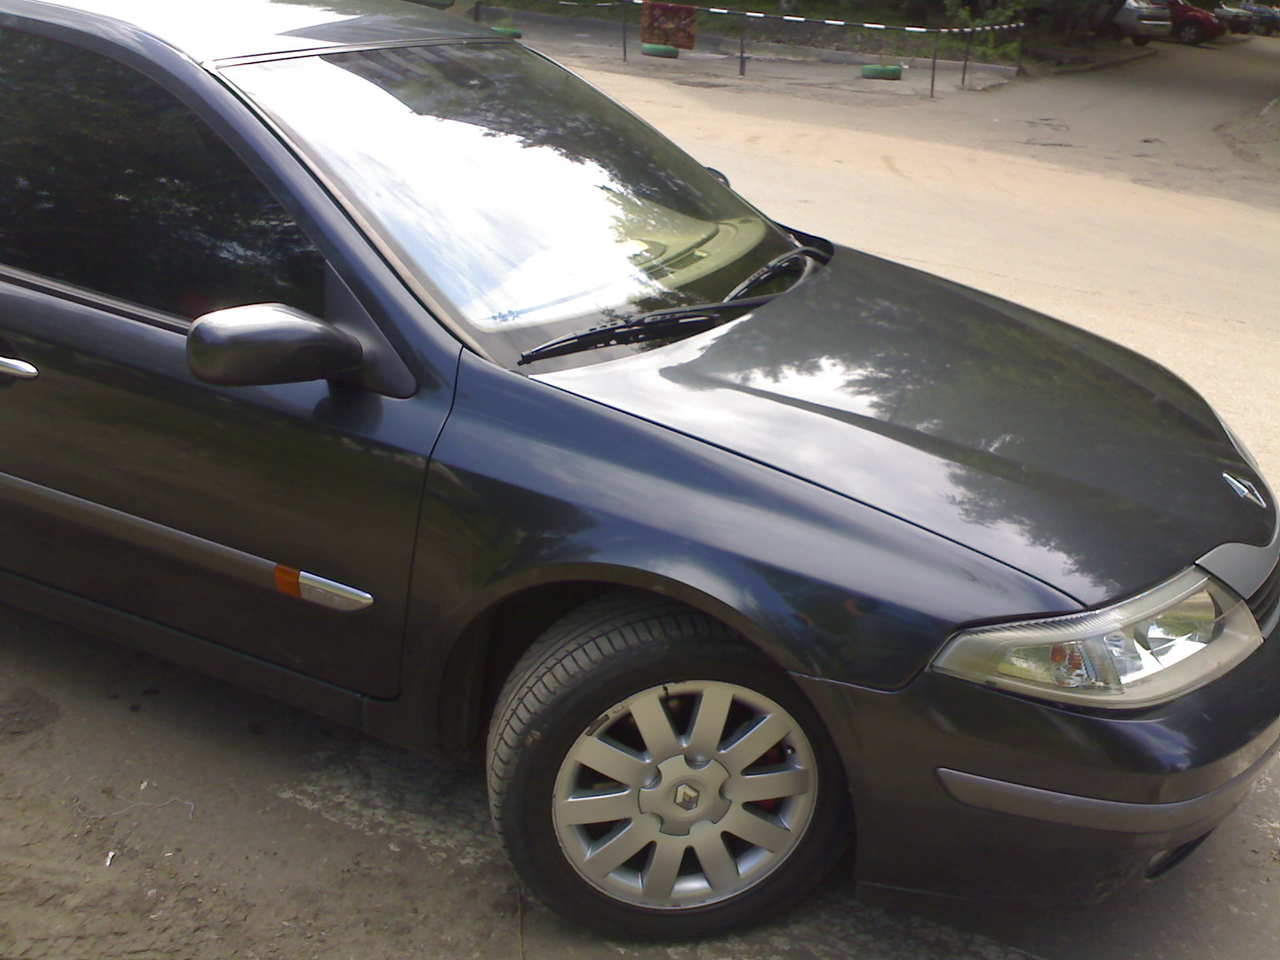 2001 renault laguna for sale 1 8 gasoline ff manual for sale. Black Bedroom Furniture Sets. Home Design Ideas